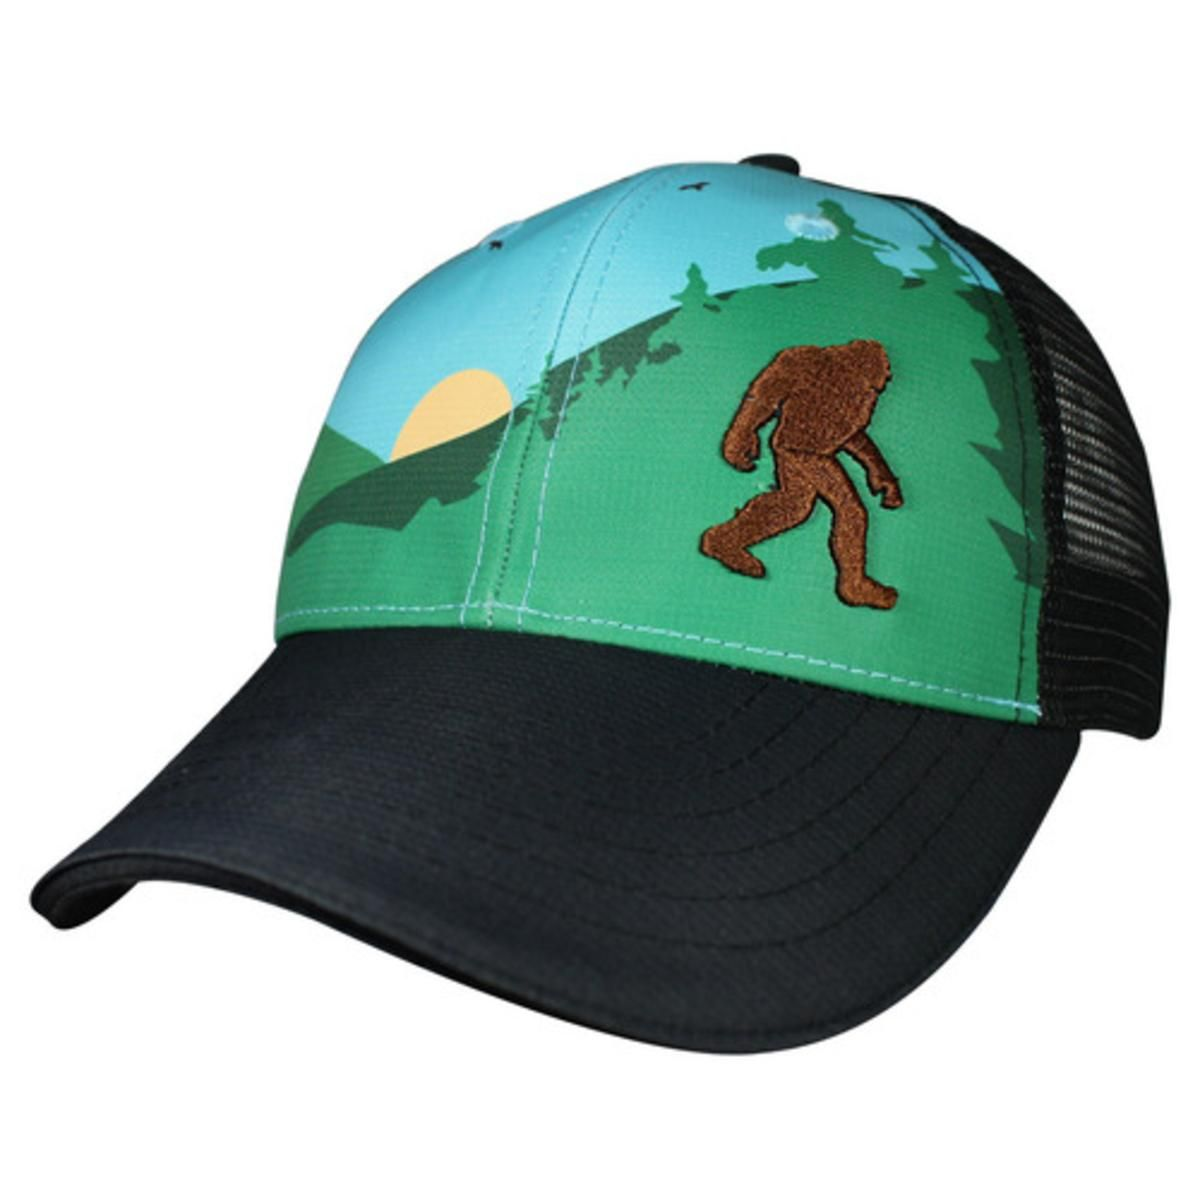 4ebc5405800a0 Headsweats Trucker Hat Bigfoot - Blue - The Warming Store